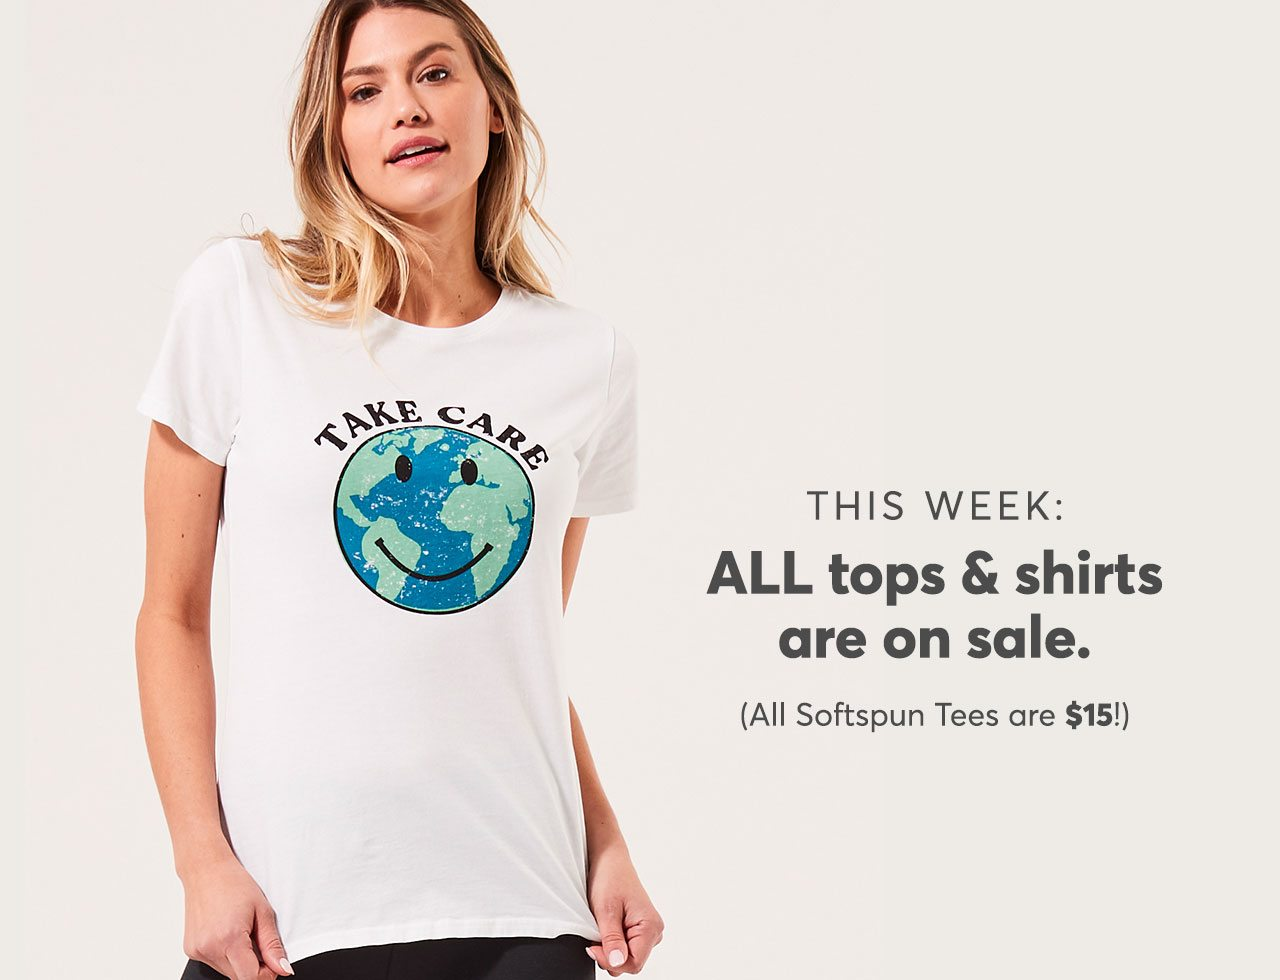 This week: All tops & shirts are ON SALE (Softspun Tees are only $15)!